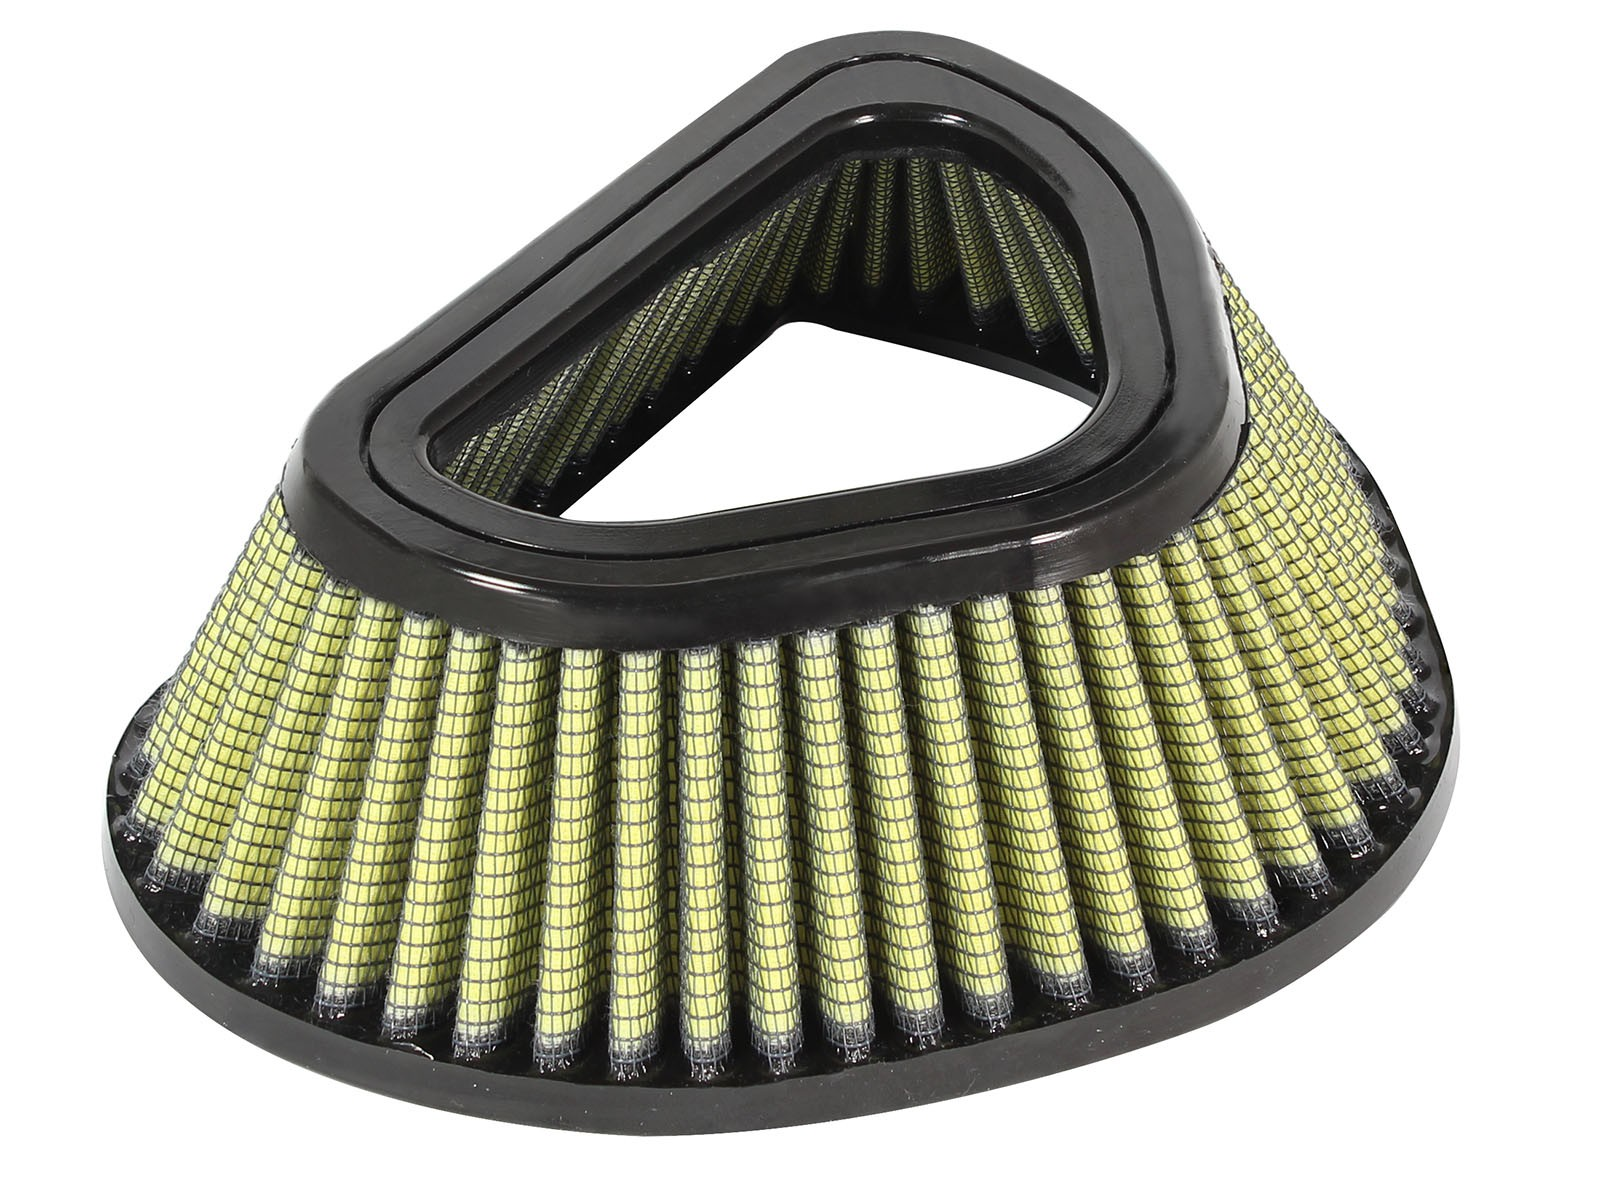 aFe POWER 87-10025 Aries Powersports Pro GUARD7 Air Filter